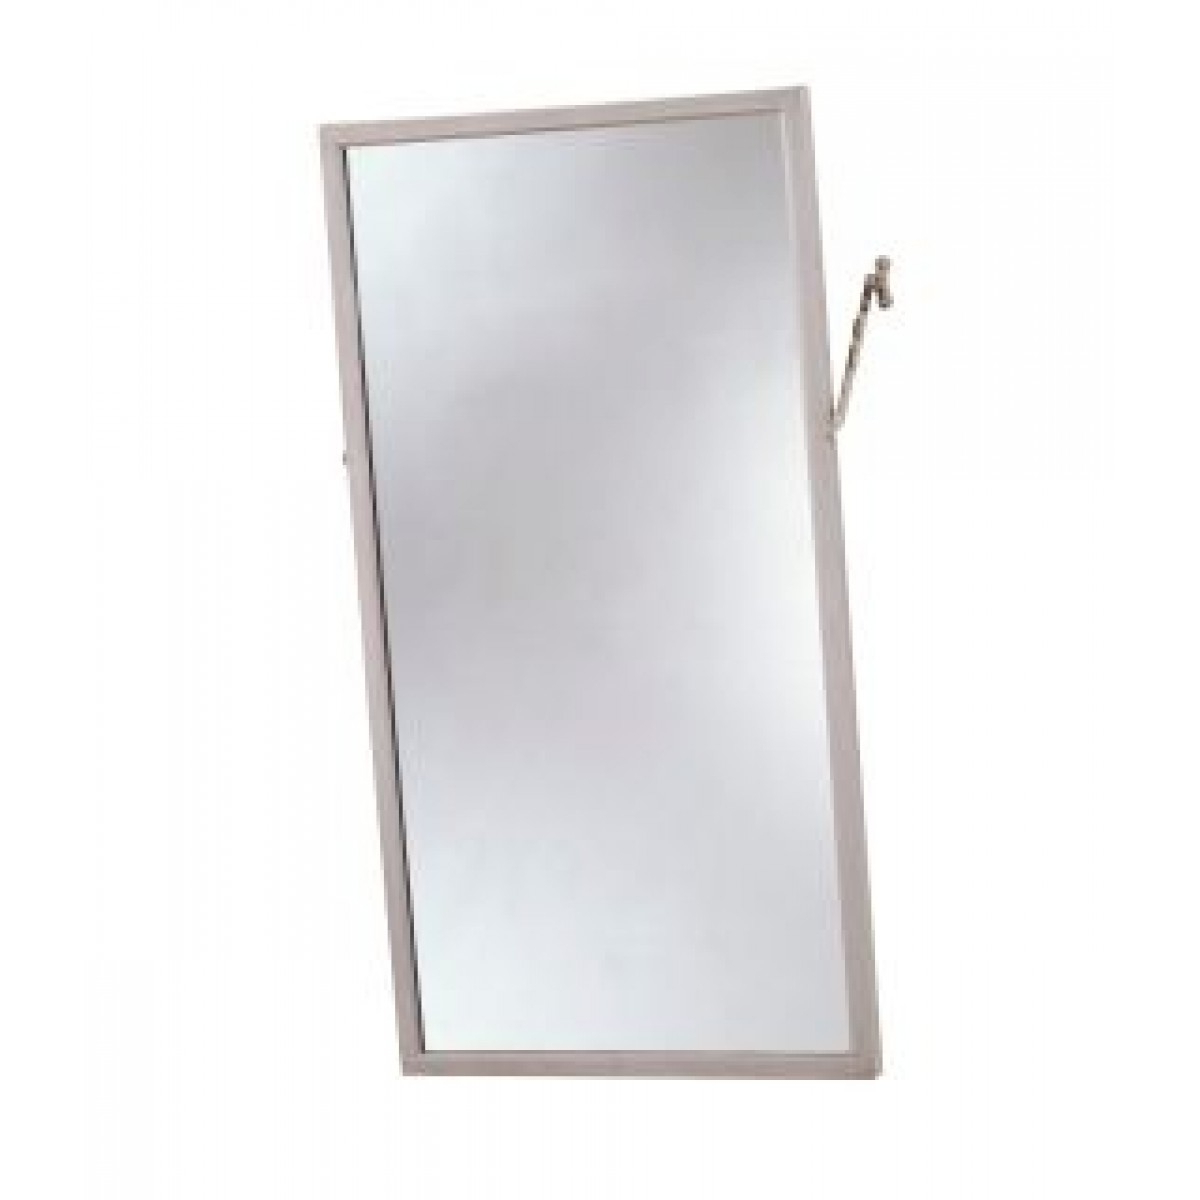 Tilting Wall Mirrors Regarding Fashionable Bobrick B 294 Angle Frame Tilting Mirrors (View 18 of 20)